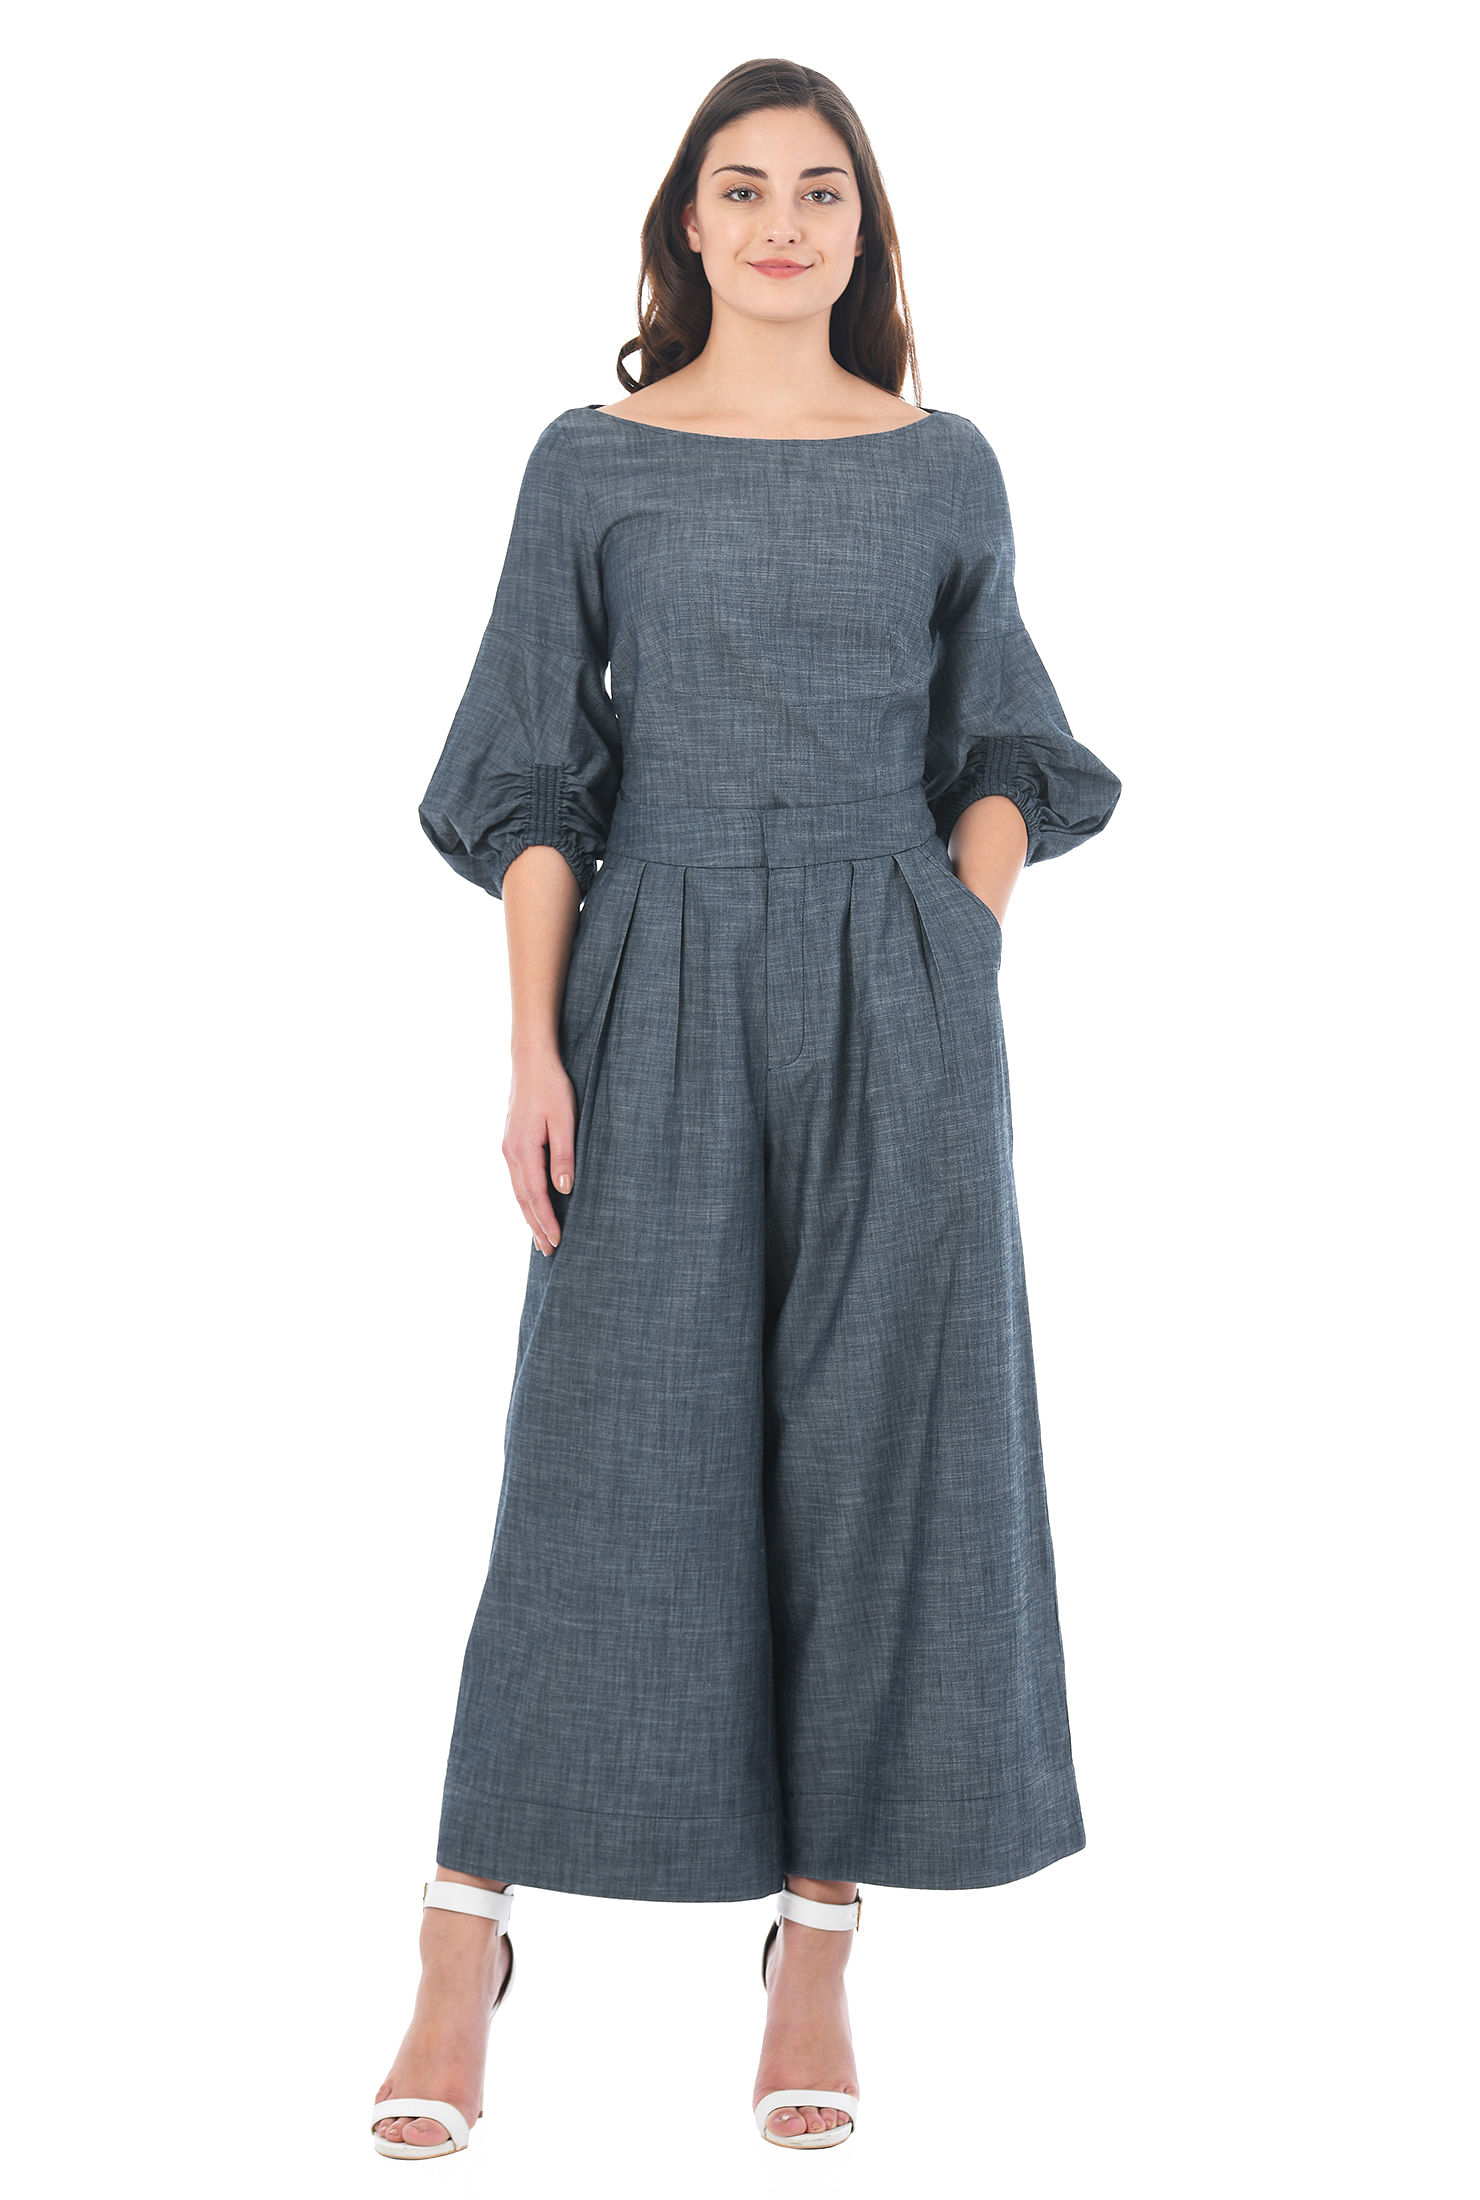 eShakti Women's Ruched bell sleeve cotton chambray top and palazzo pants